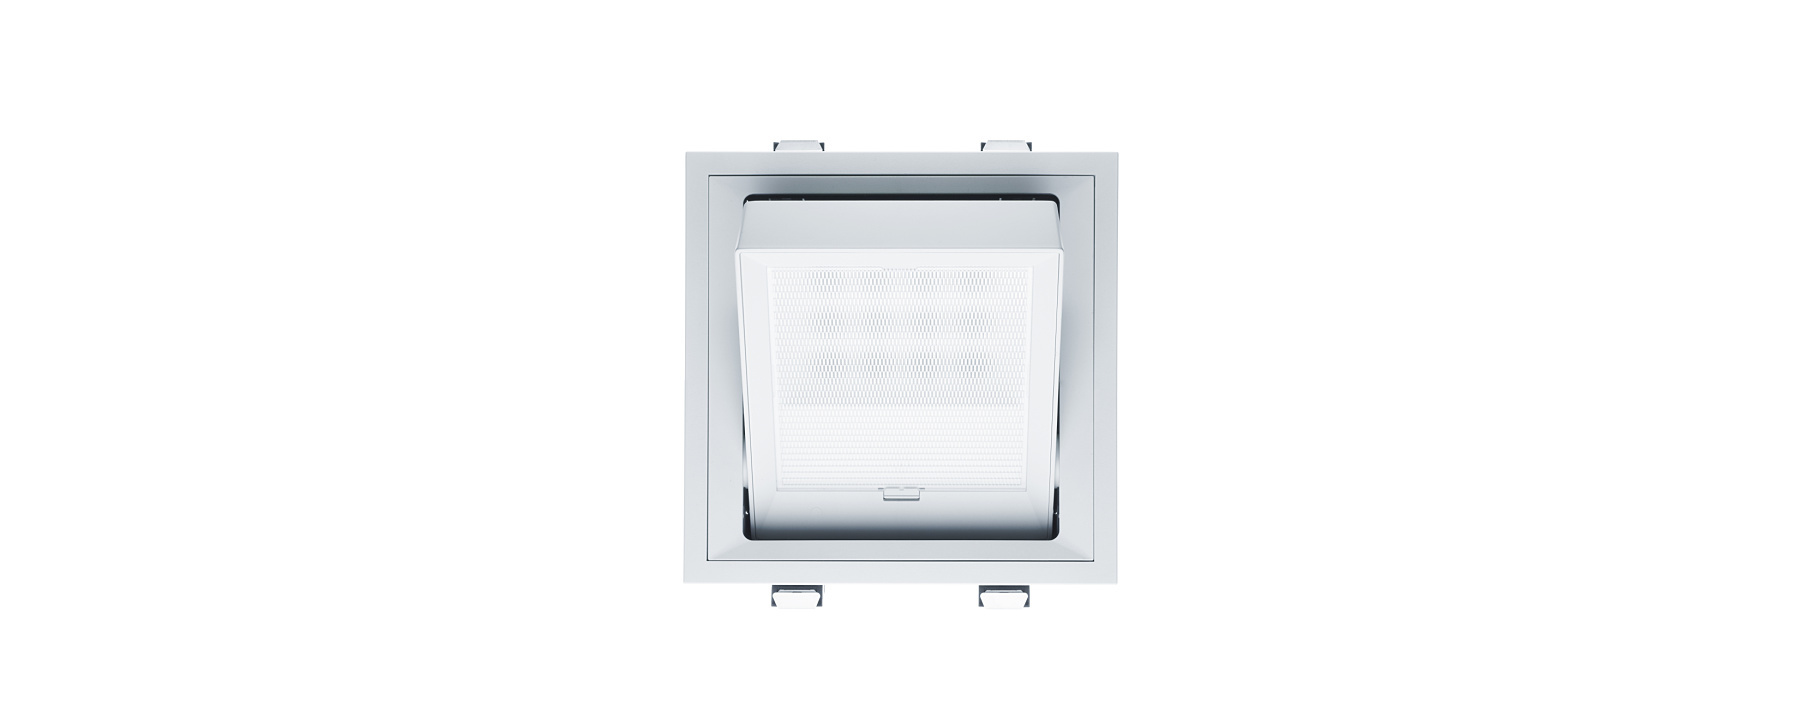 Light Board - Recessed spotlights, recessed floodlights and recessed wallwashers